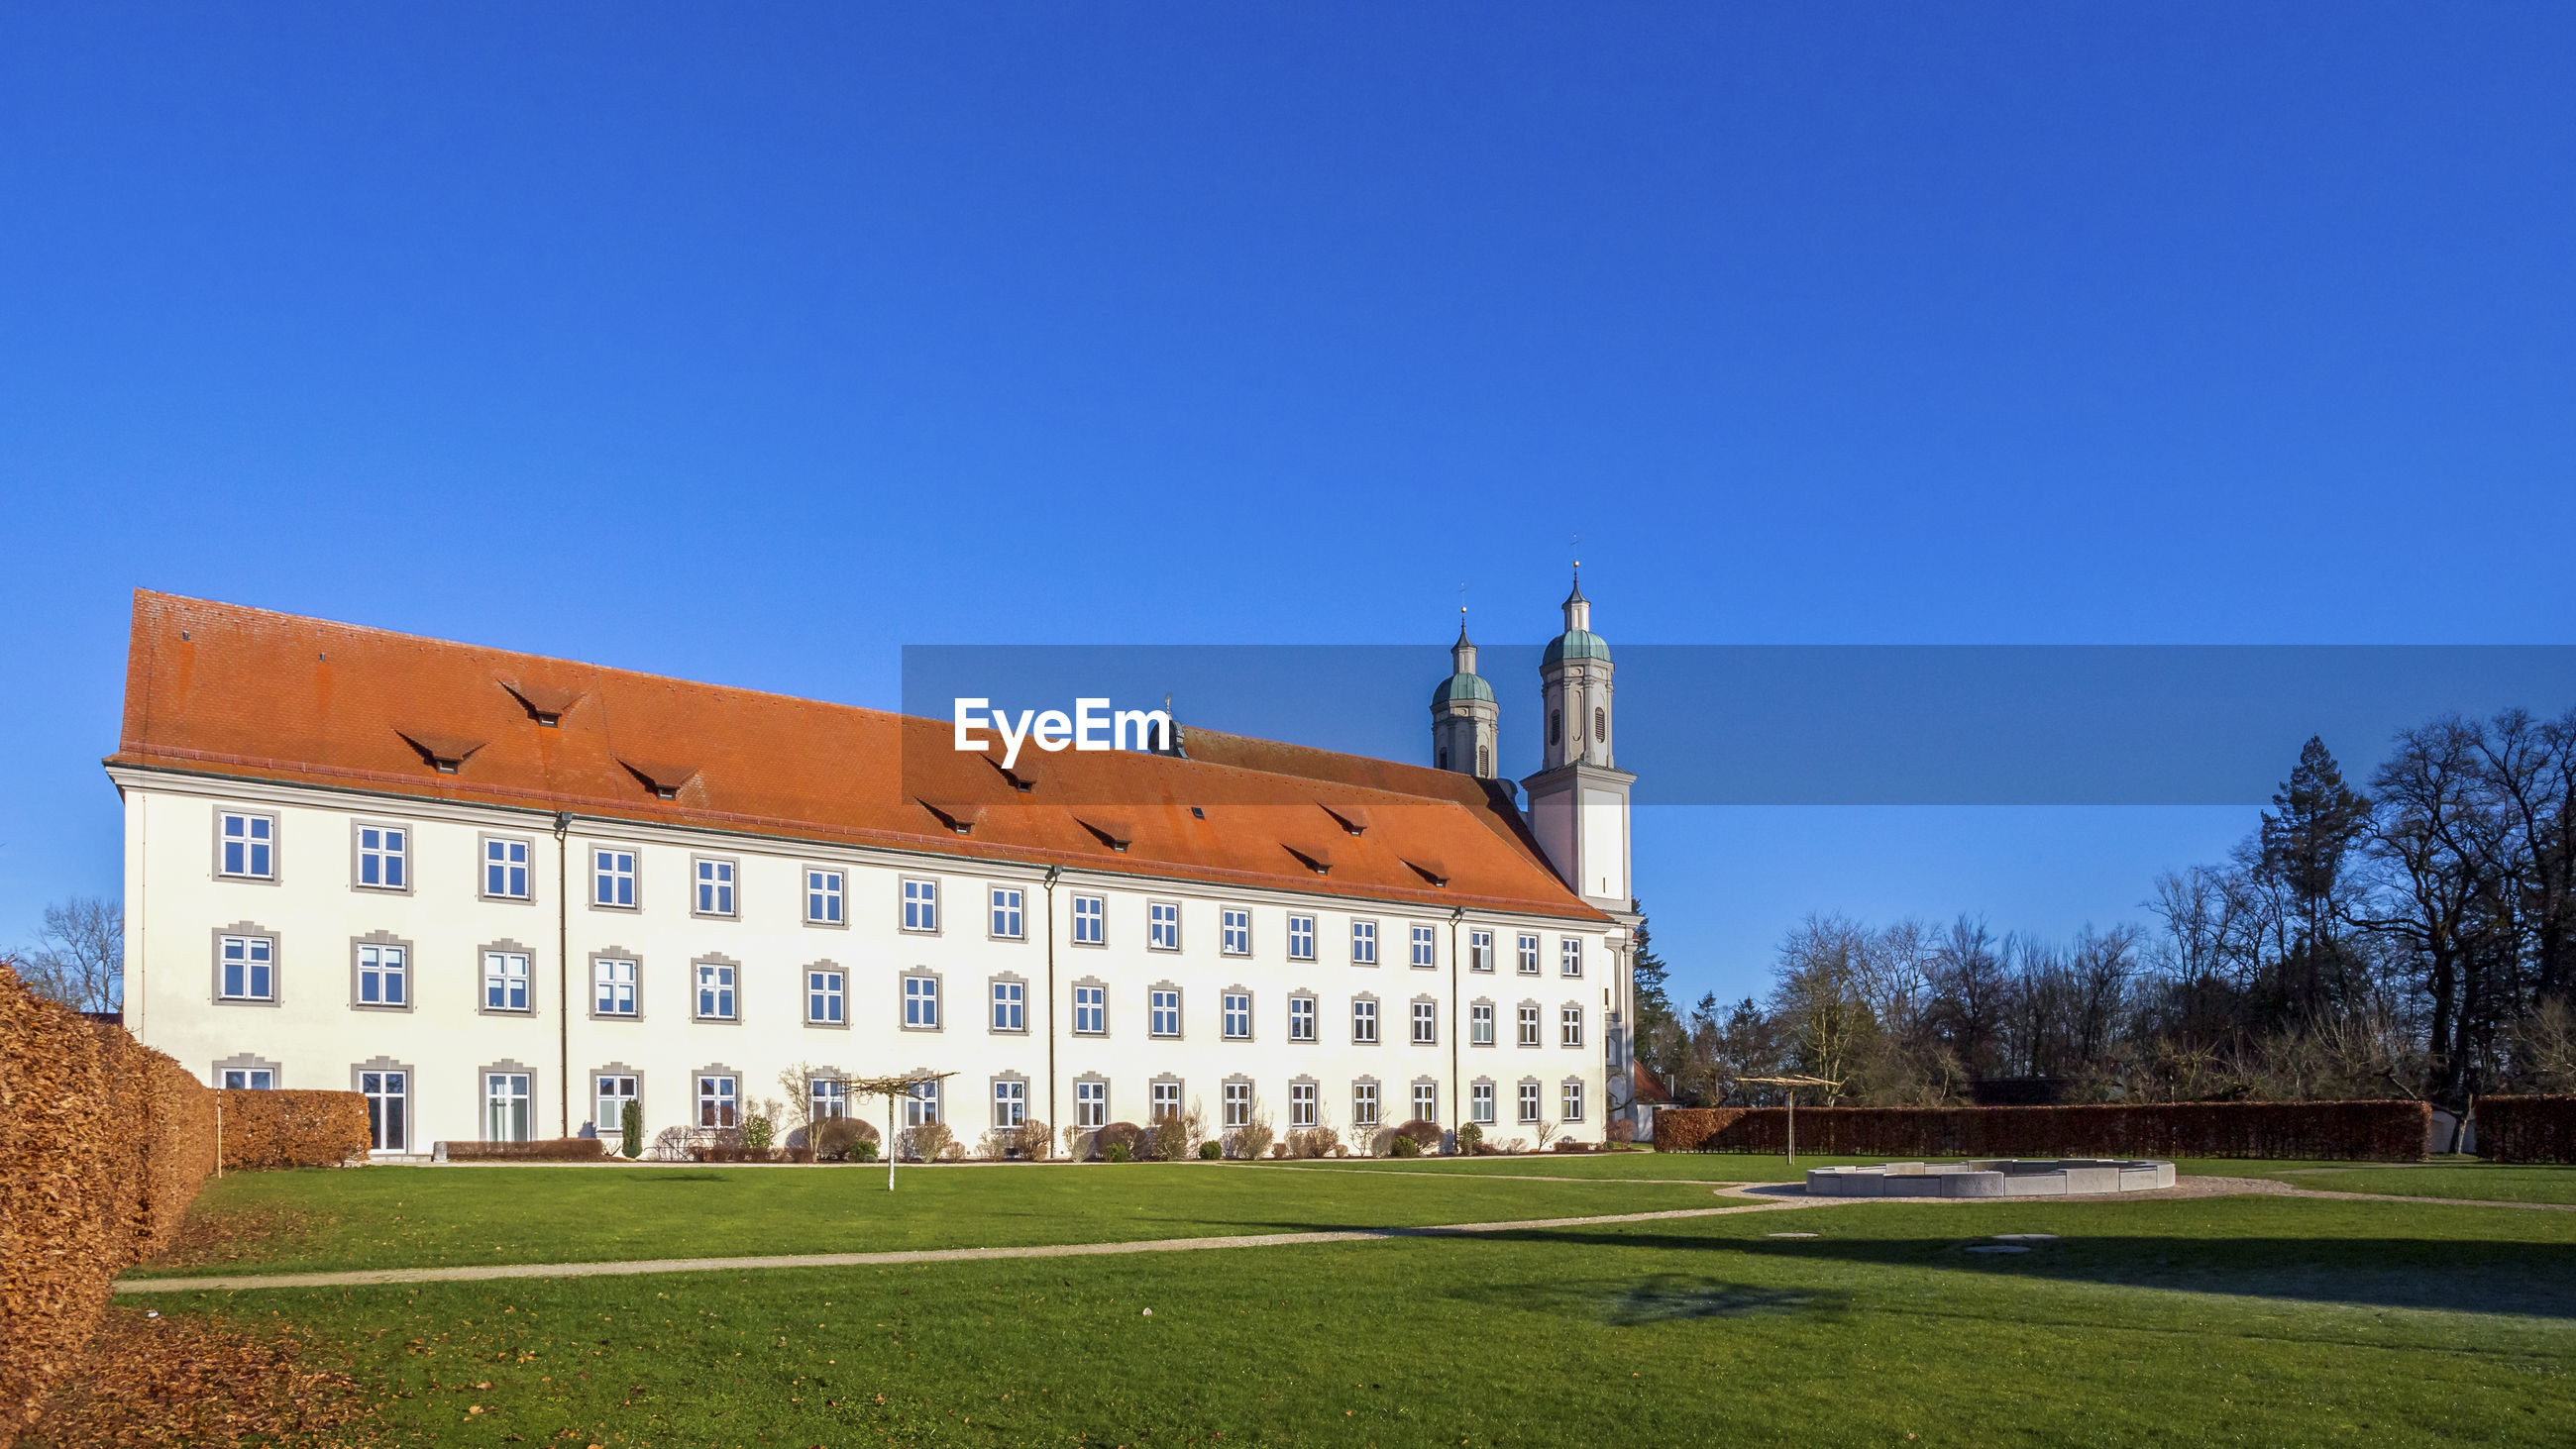 Holzen abbey and lawn against clear blue sky